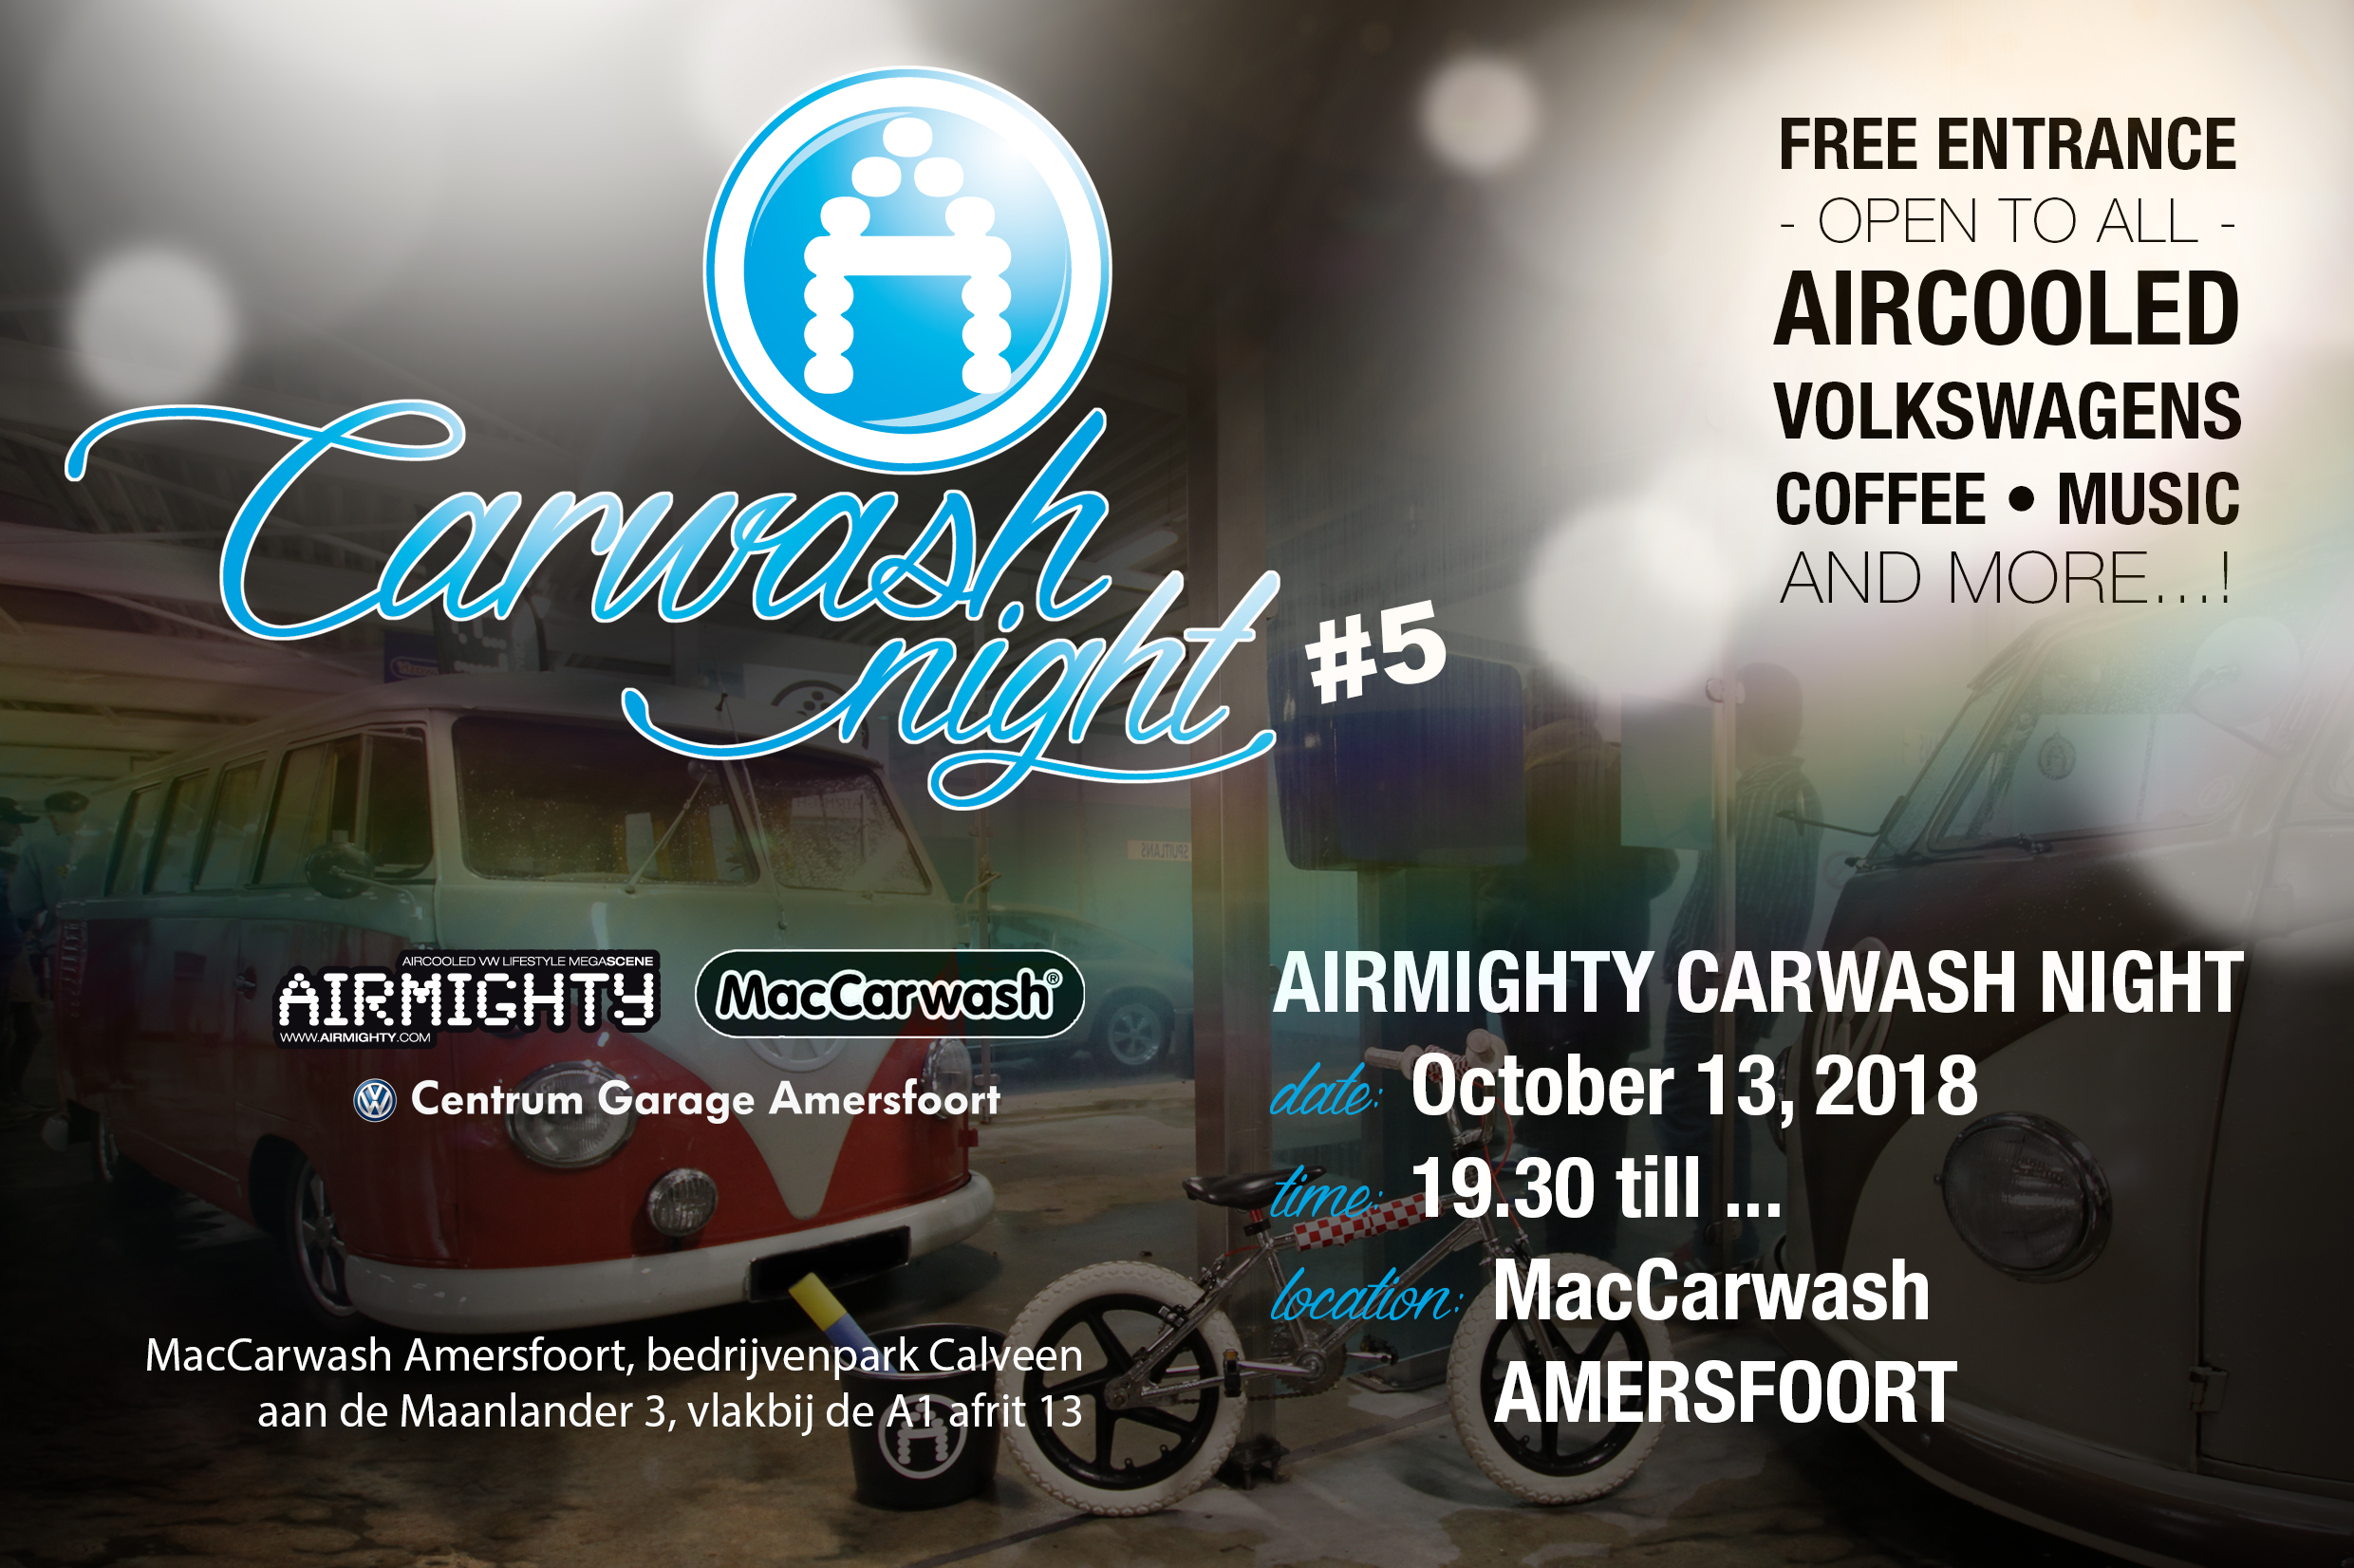 AirMighty Carwash Night #5